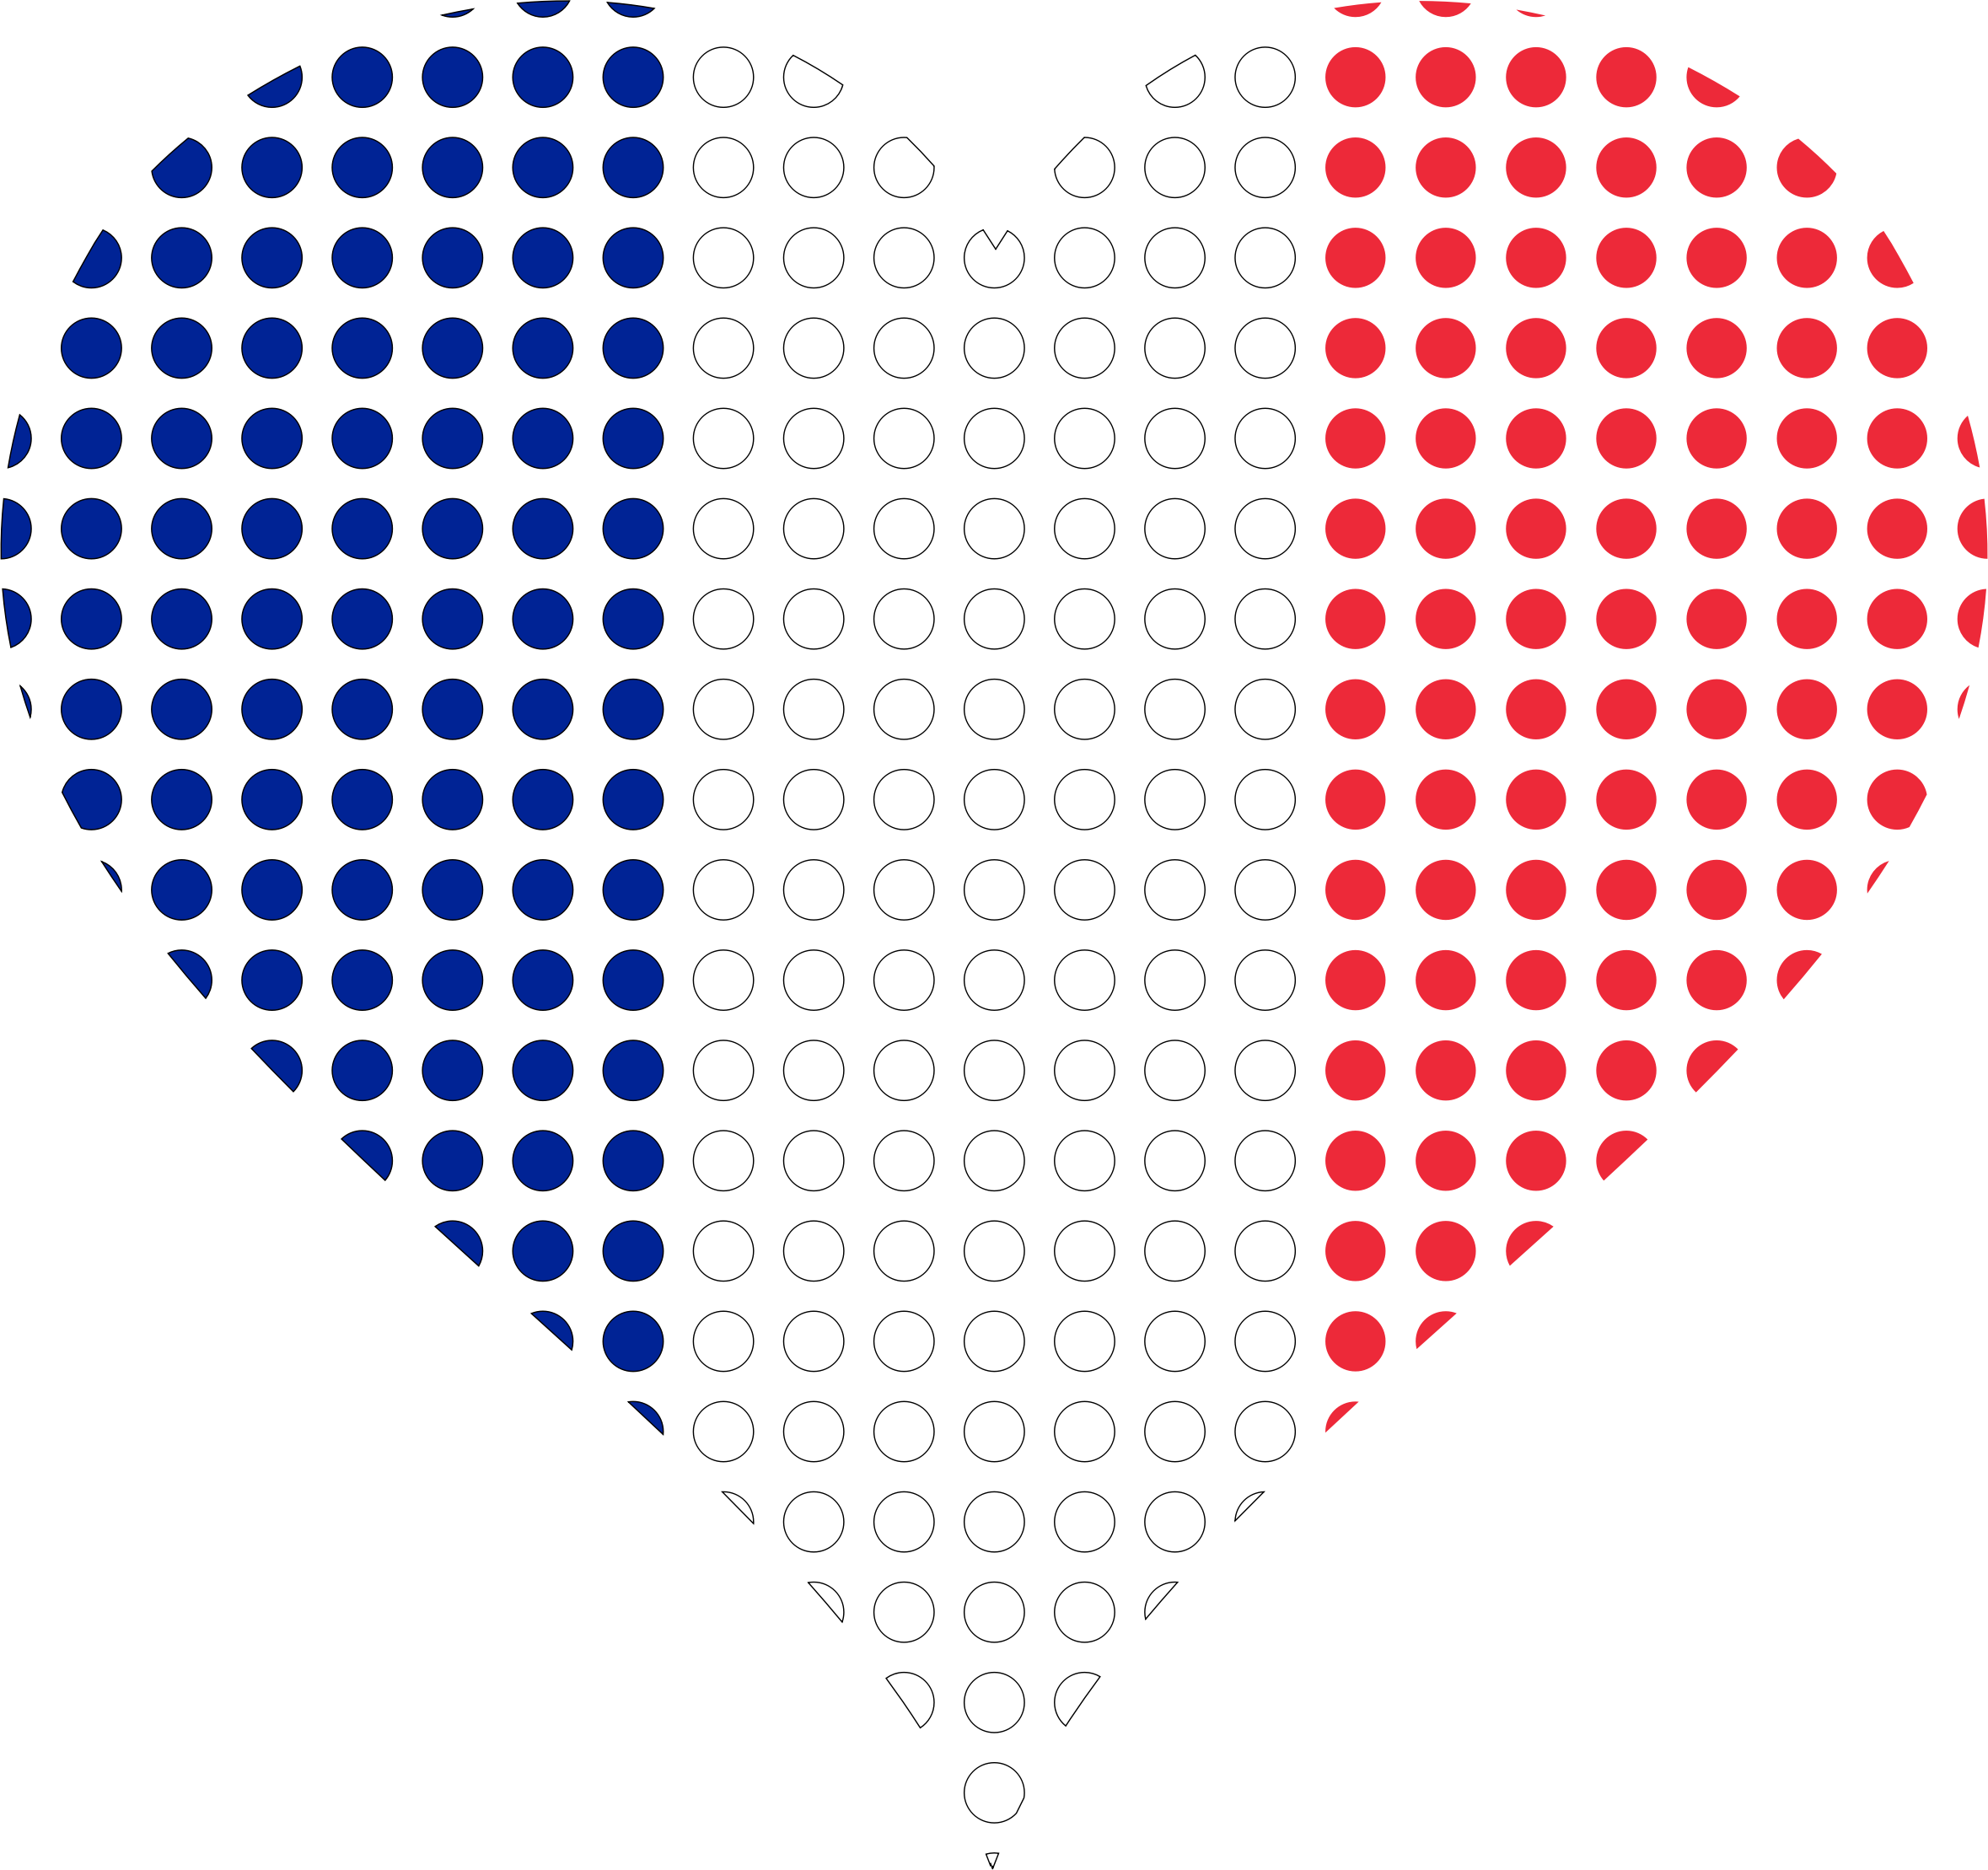 Heart france flag circles. French clipart icon